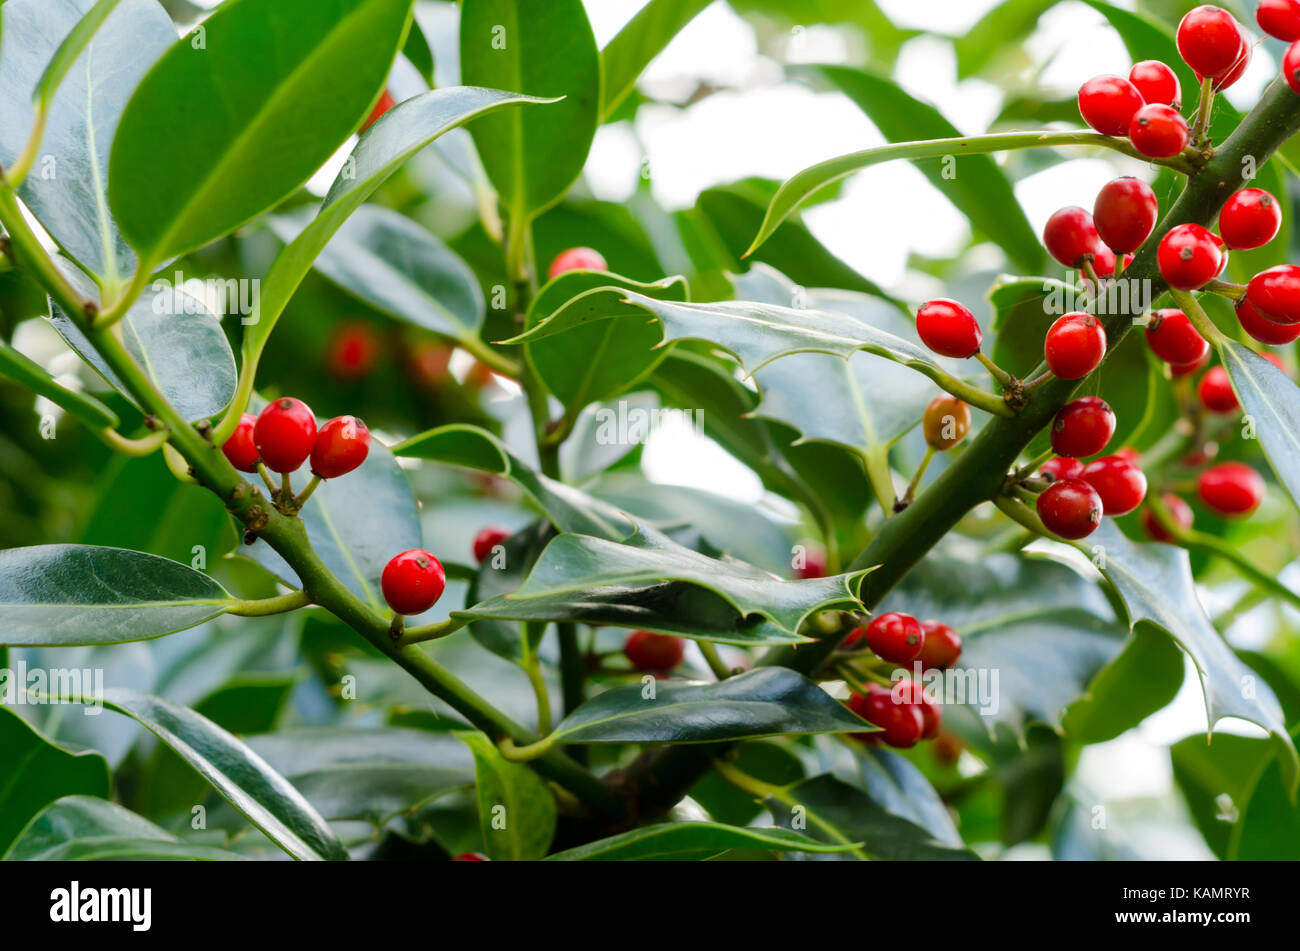 Holly Berries and Leaves on a Holly Plant (Ilex Aquifolium) - Stock Image